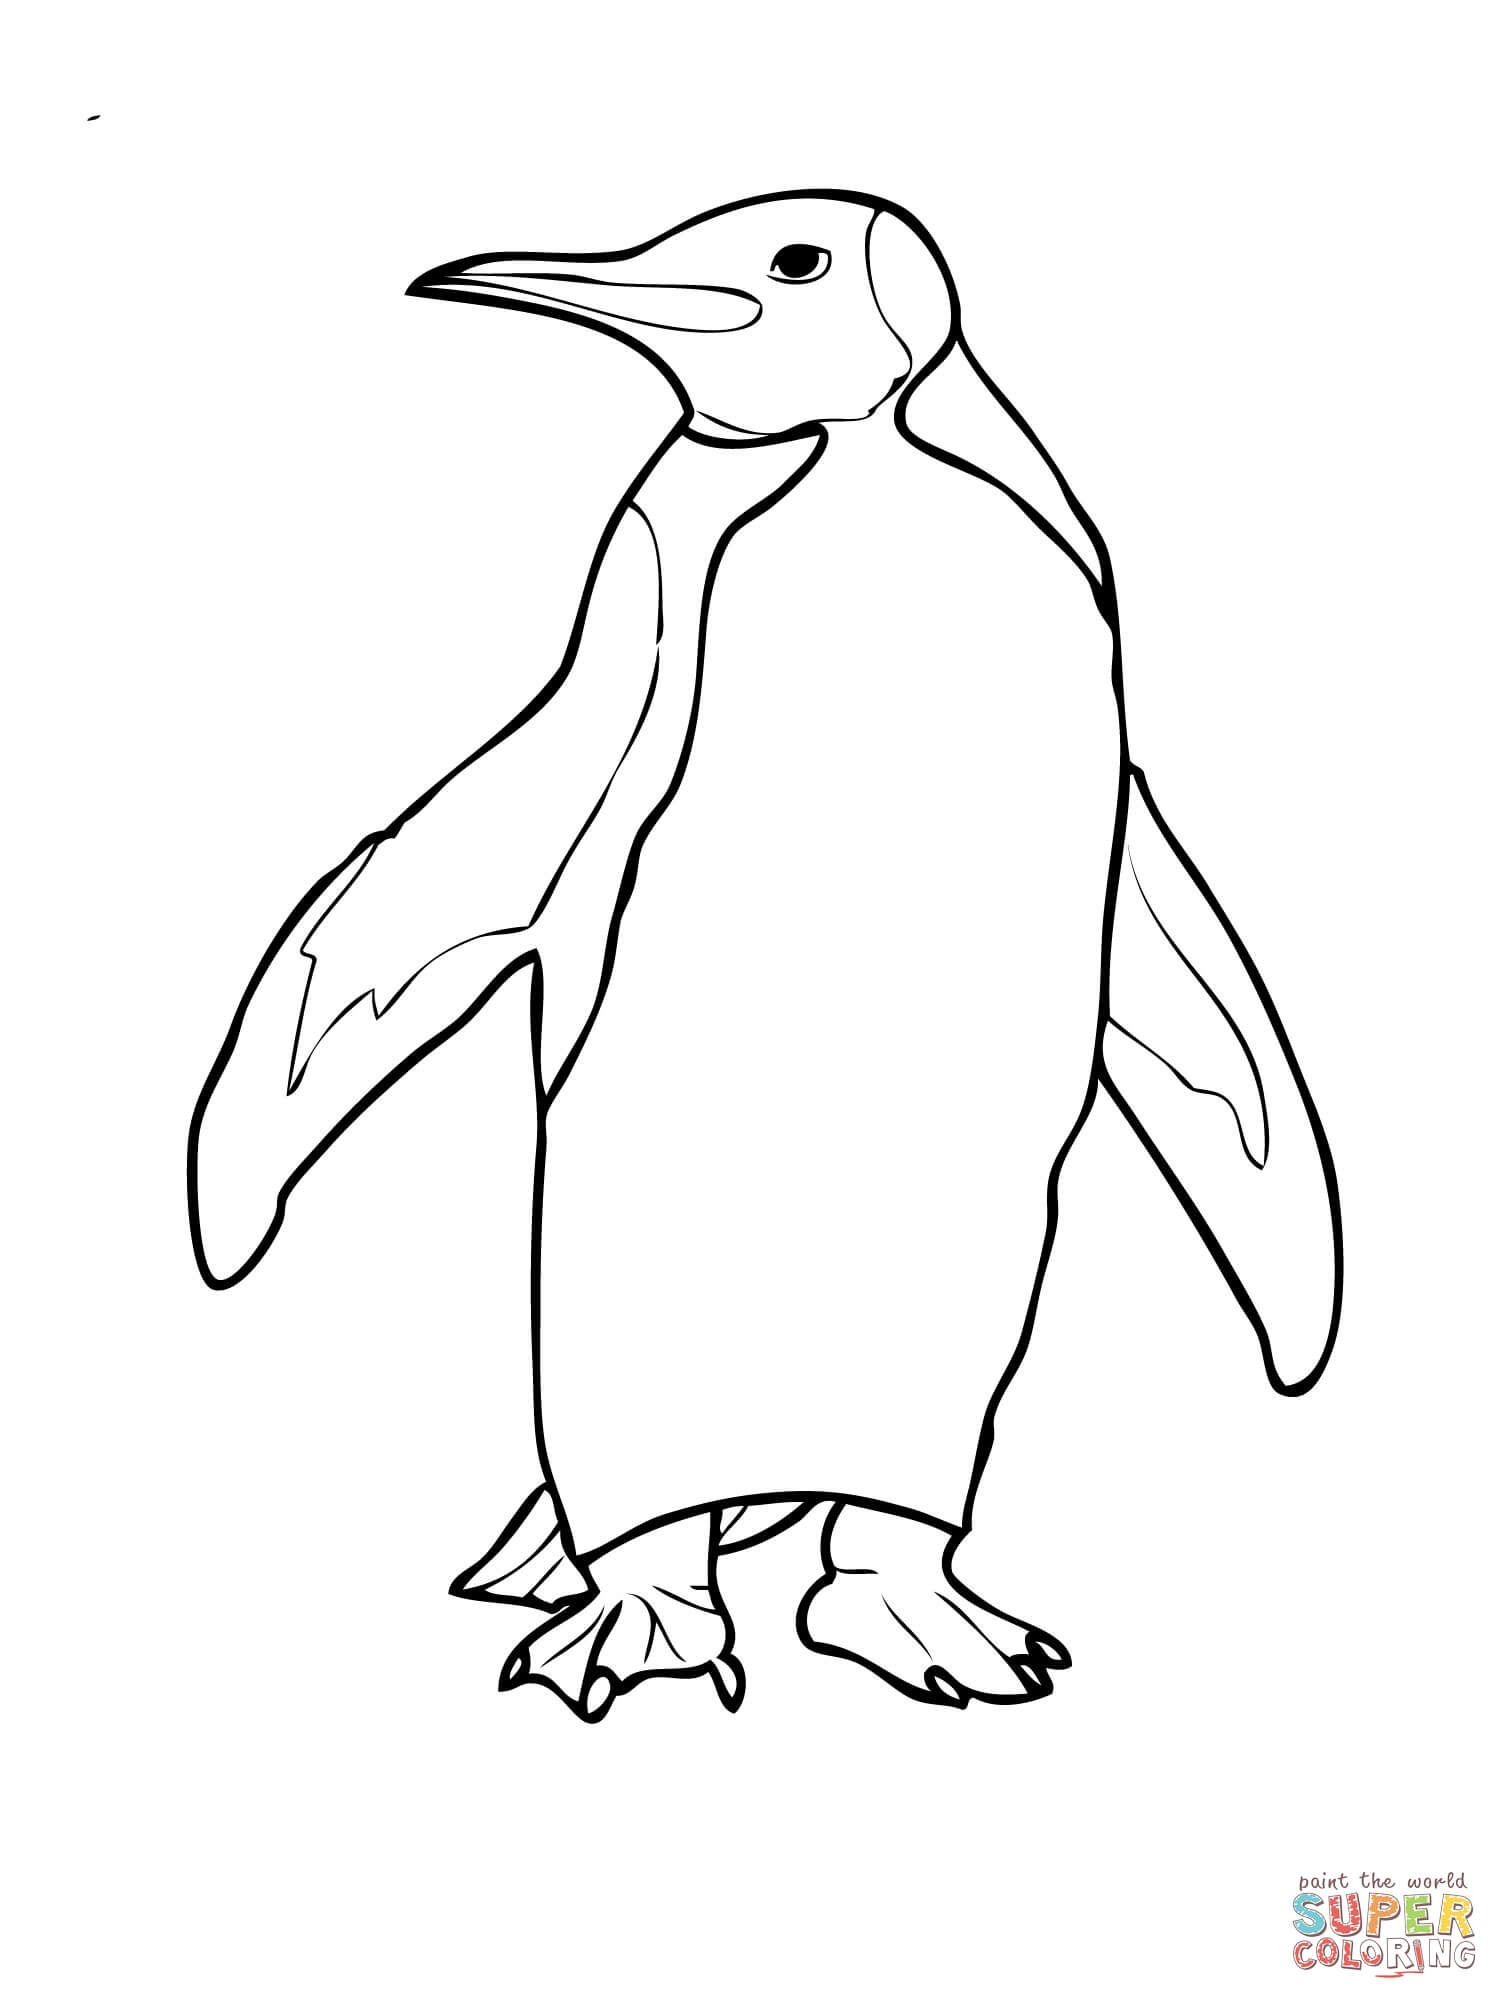 King Penguin Coloring Page | penguin doodle in 2018 | Pinterest ...